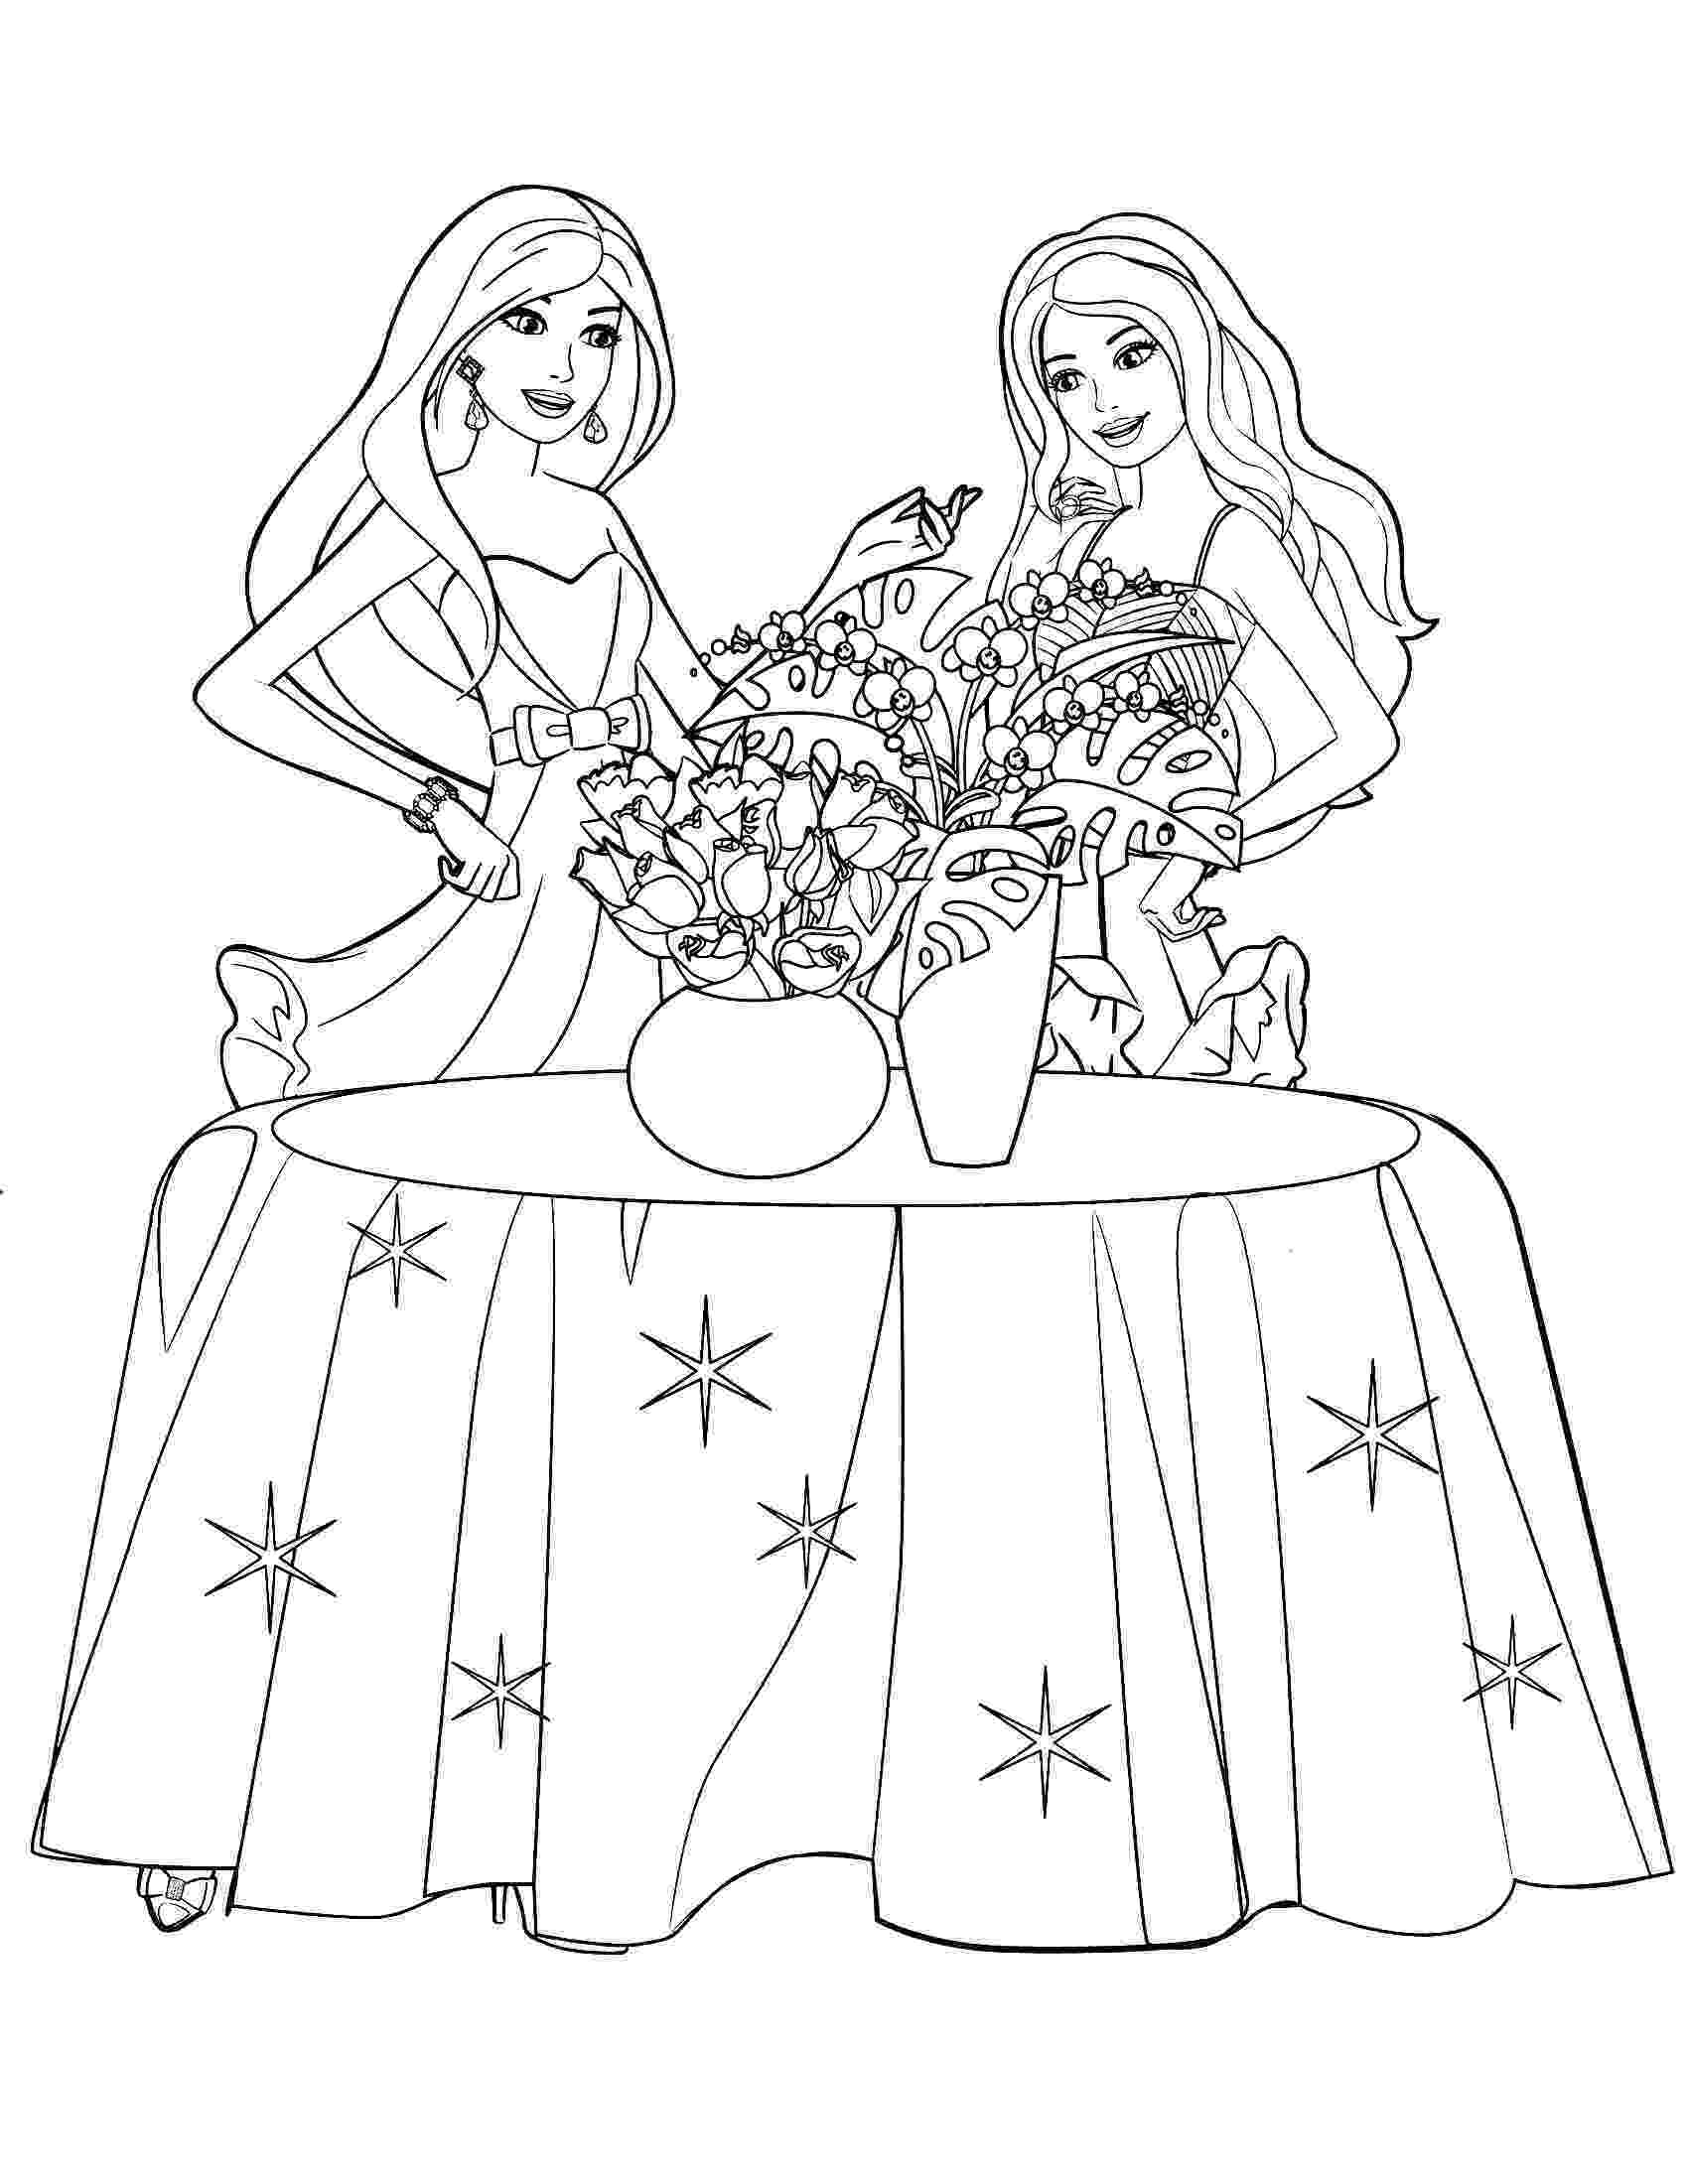 barbie doll pictures to color barbie coloring pages 360coloringpages to pictures doll barbie color